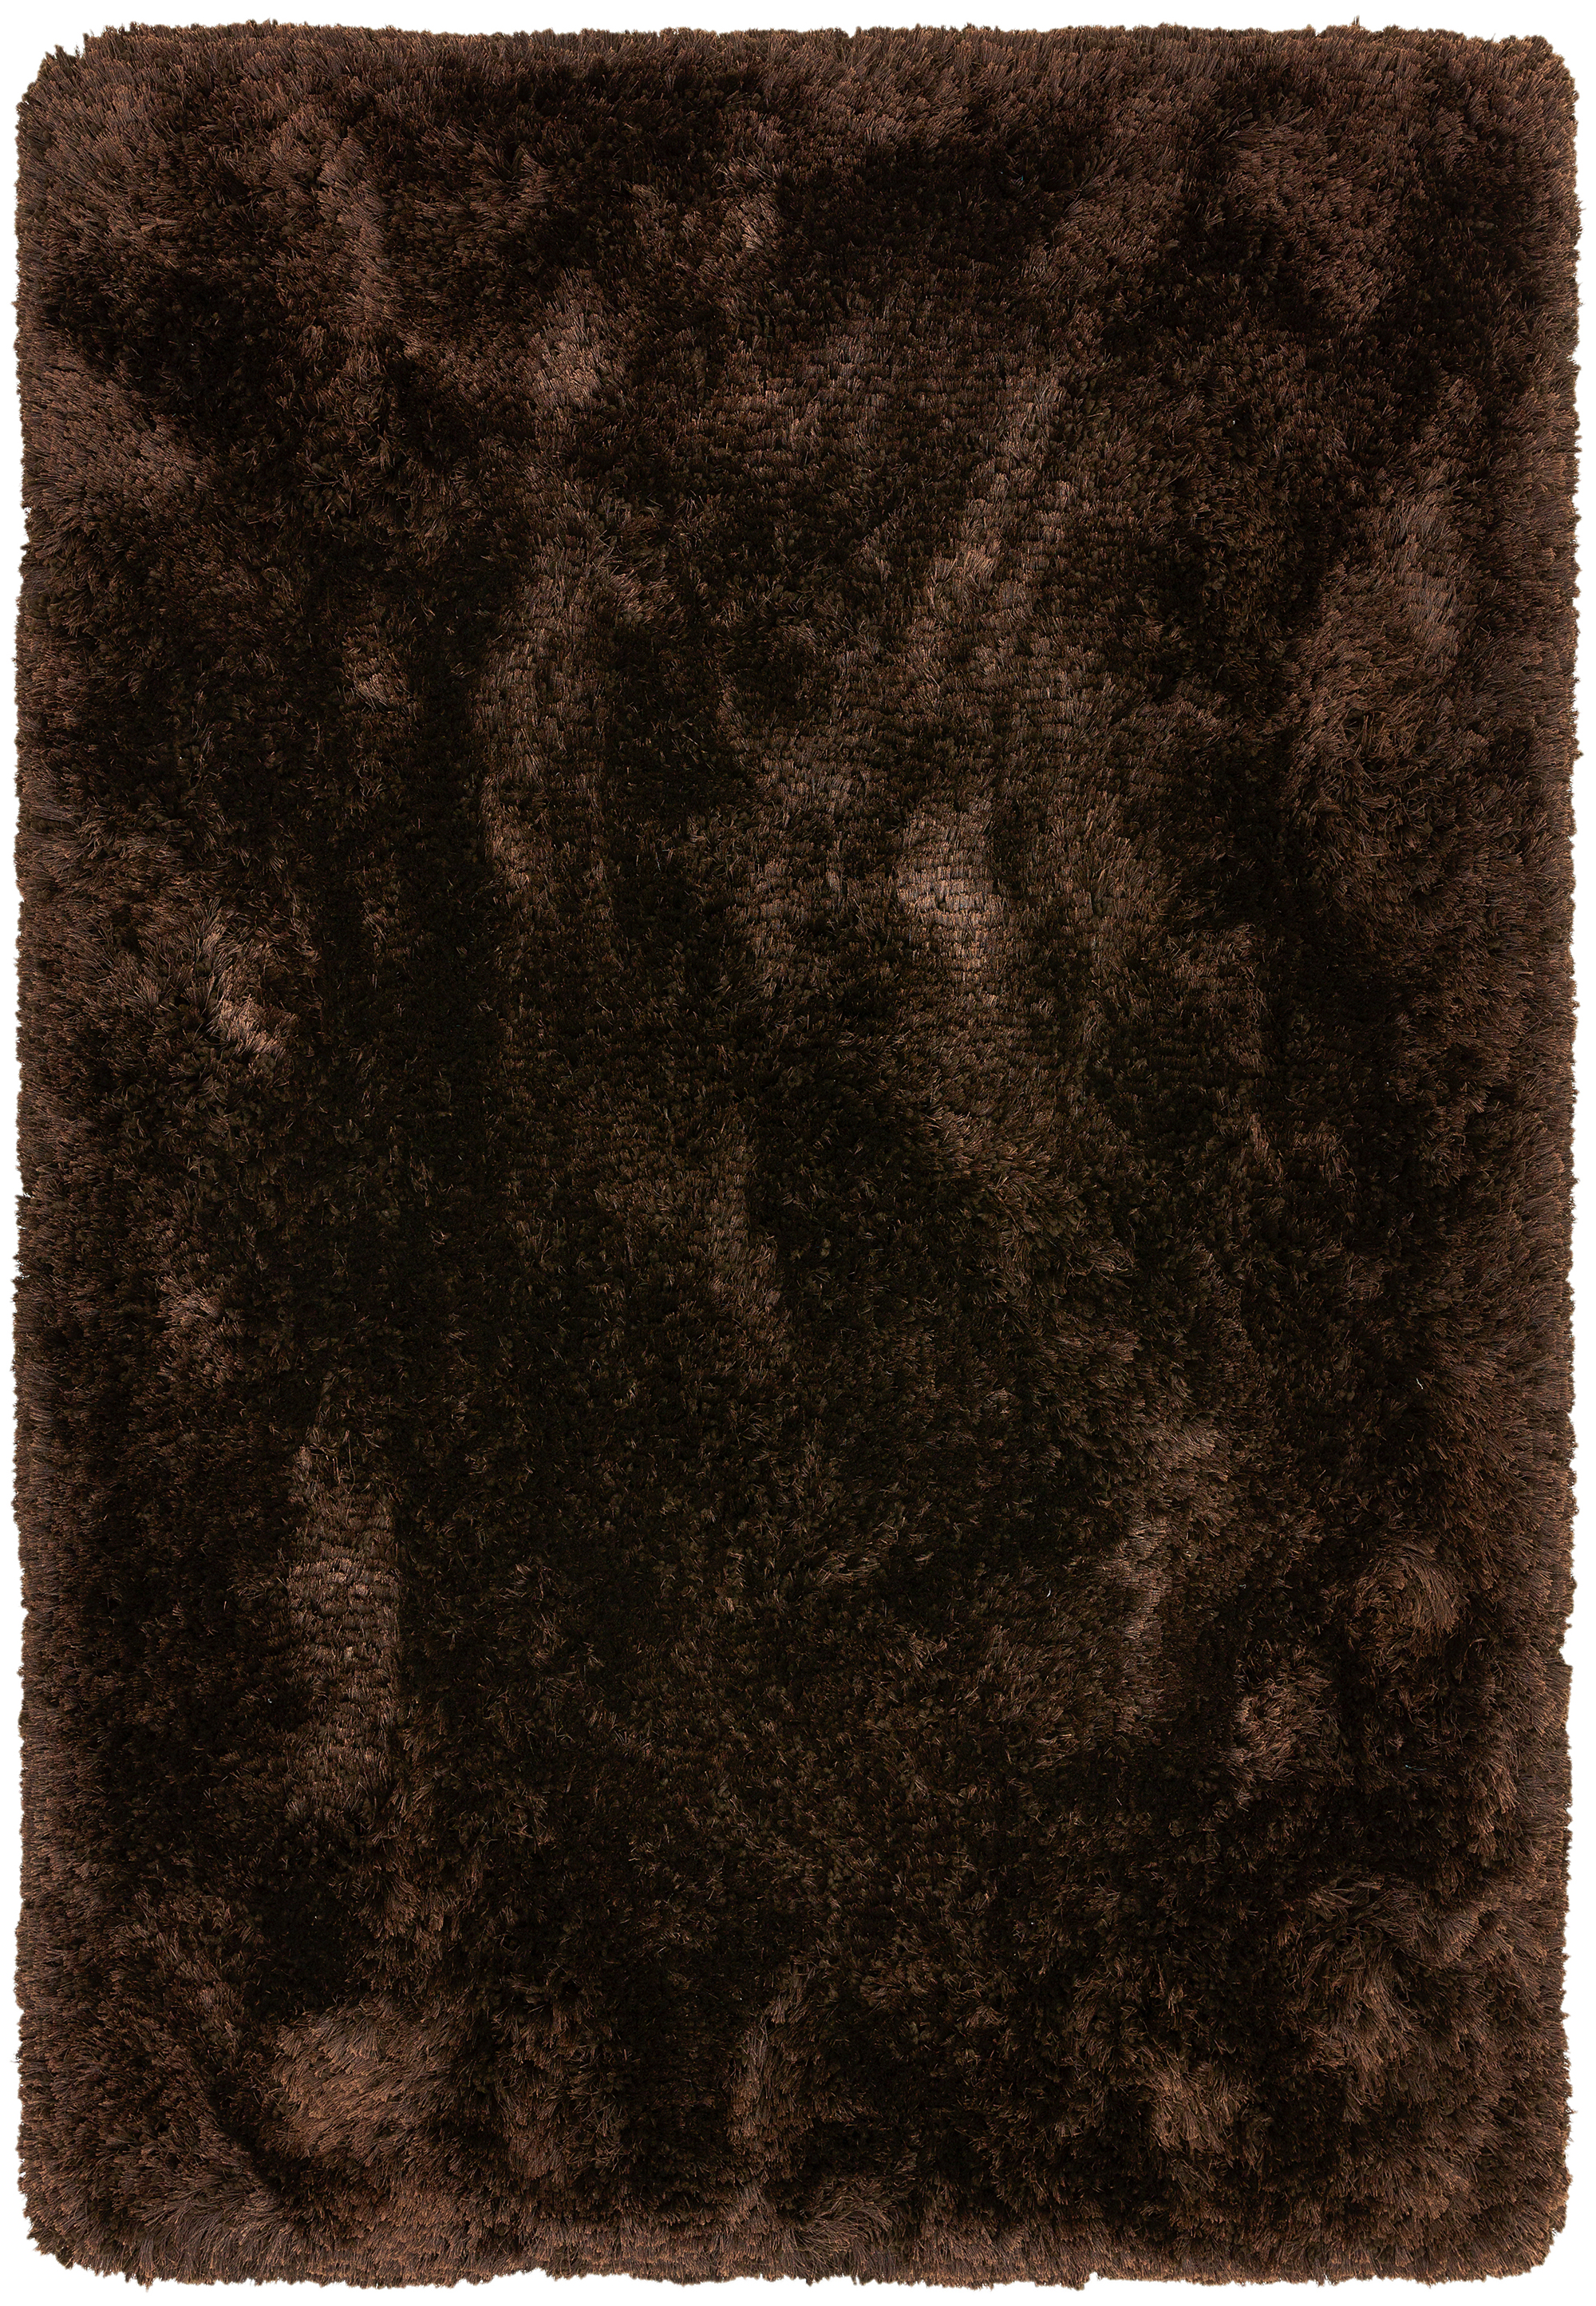 Plush Rug Dark Chocolate